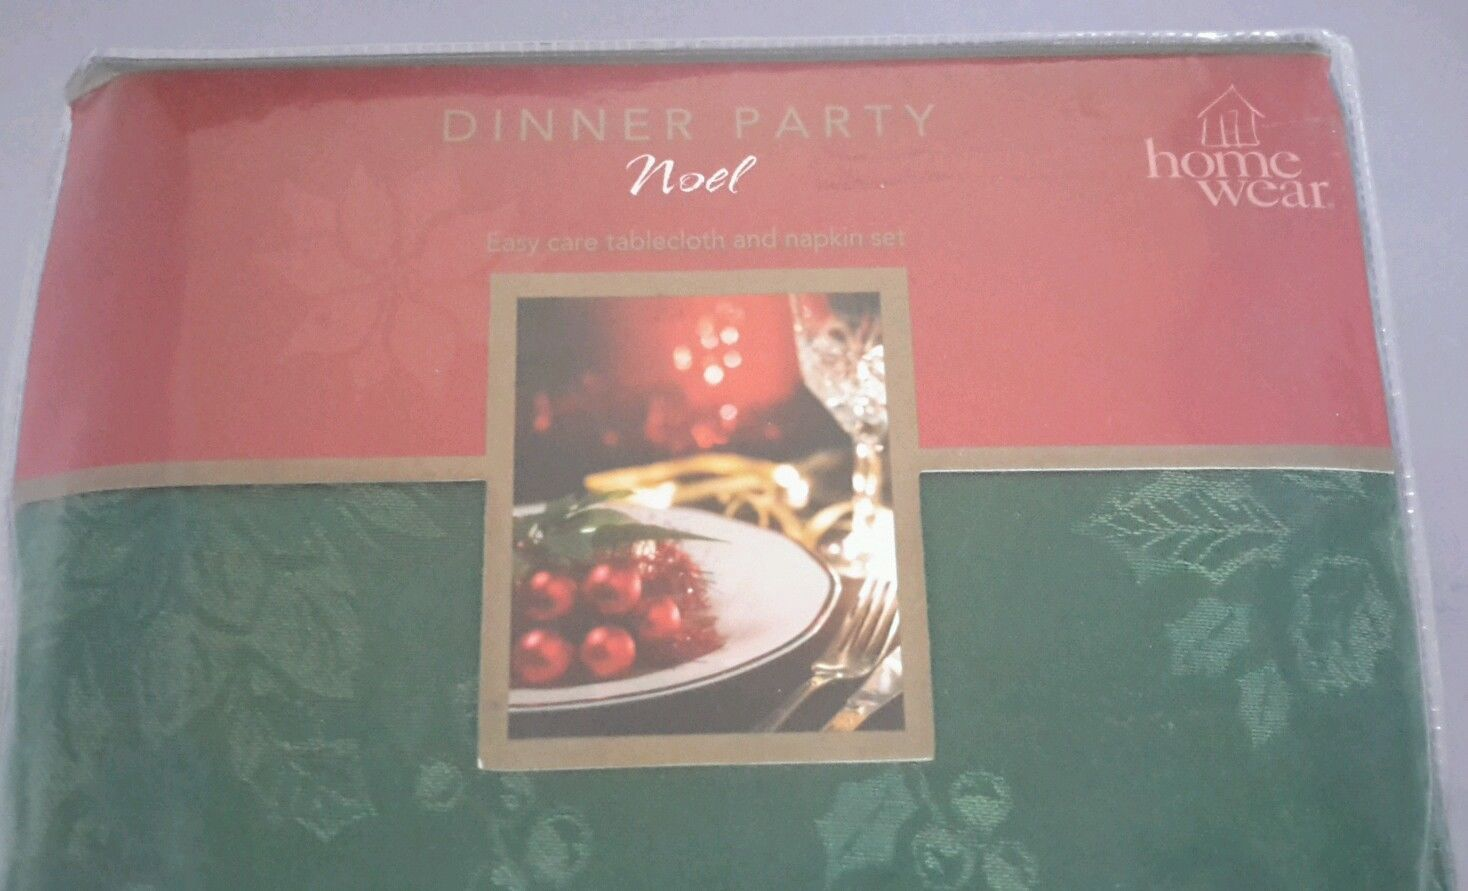 Homewear table linens dinner party noel green 52 x 70 for Table linens 52 x 70